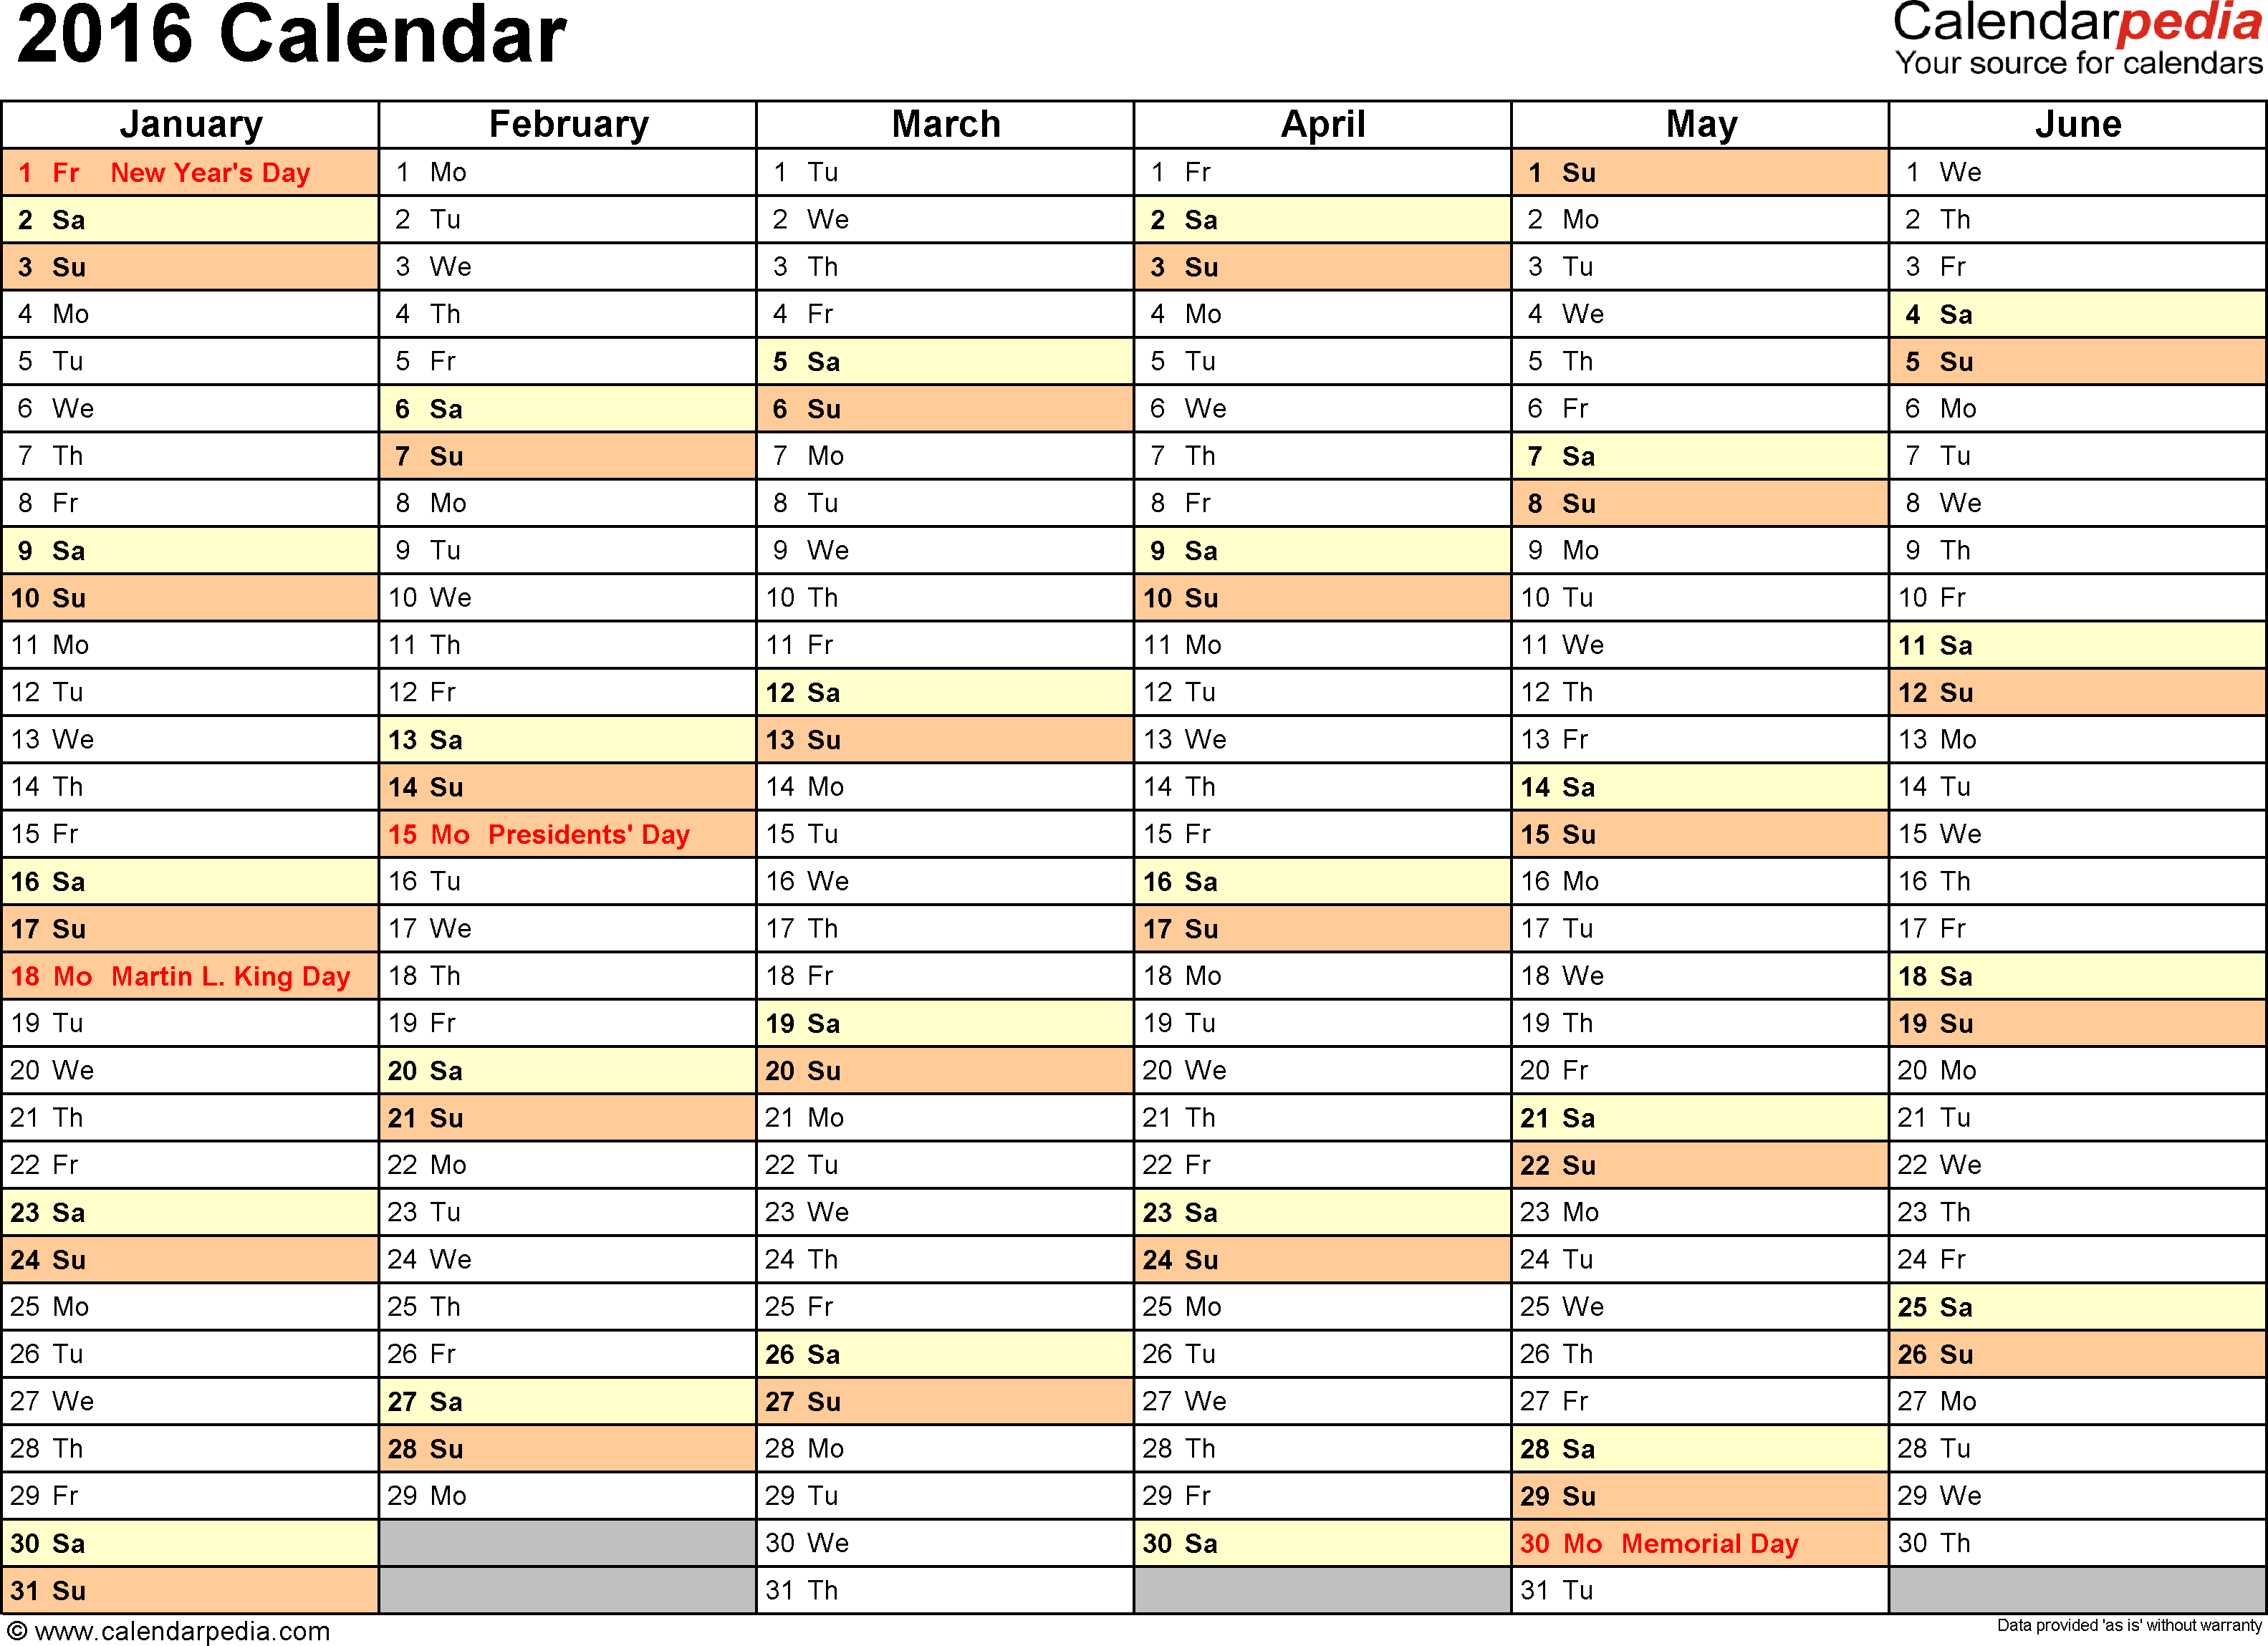 Ediblewildsus  Unique  Calendar  Download  Free Printable Excel Templates Xls With Luxury Template   Calendar For Excel Months Horizontally  Pages Landscape Orientation With Cool Open Two Excel Windows Also How To Convert Date To Text In Excel In Addition Excel Divide Formula And How To Make A Checkbox In Excel As Well As How To Use Sumif In Excel  Additionally Excel Bell Curve From Calendarpediacom With Ediblewildsus  Luxury  Calendar  Download  Free Printable Excel Templates Xls With Cool Template   Calendar For Excel Months Horizontally  Pages Landscape Orientation And Unique Open Two Excel Windows Also How To Convert Date To Text In Excel In Addition Excel Divide Formula From Calendarpediacom